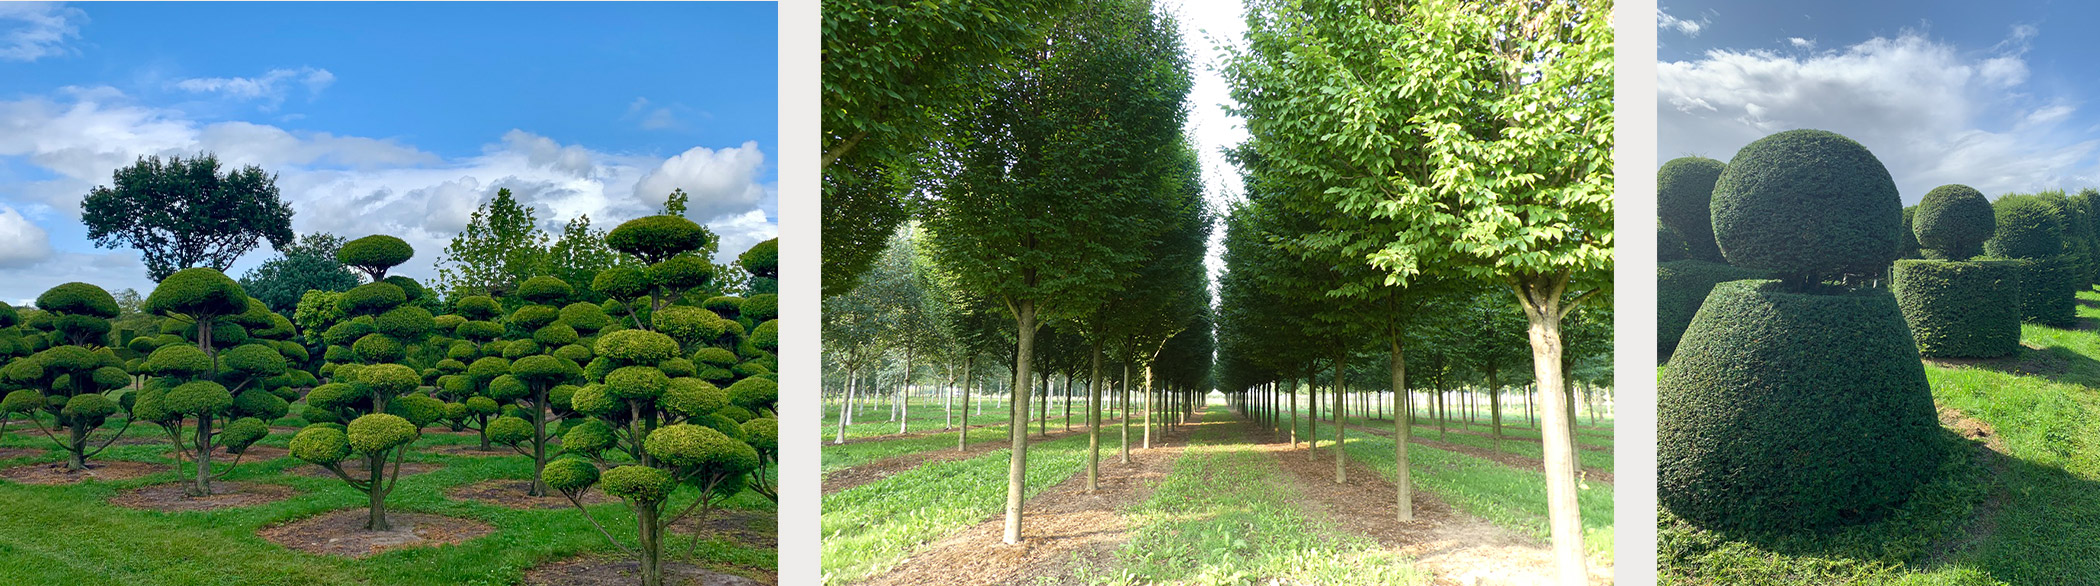 Sourcing and supply of trees, topiary and hedges